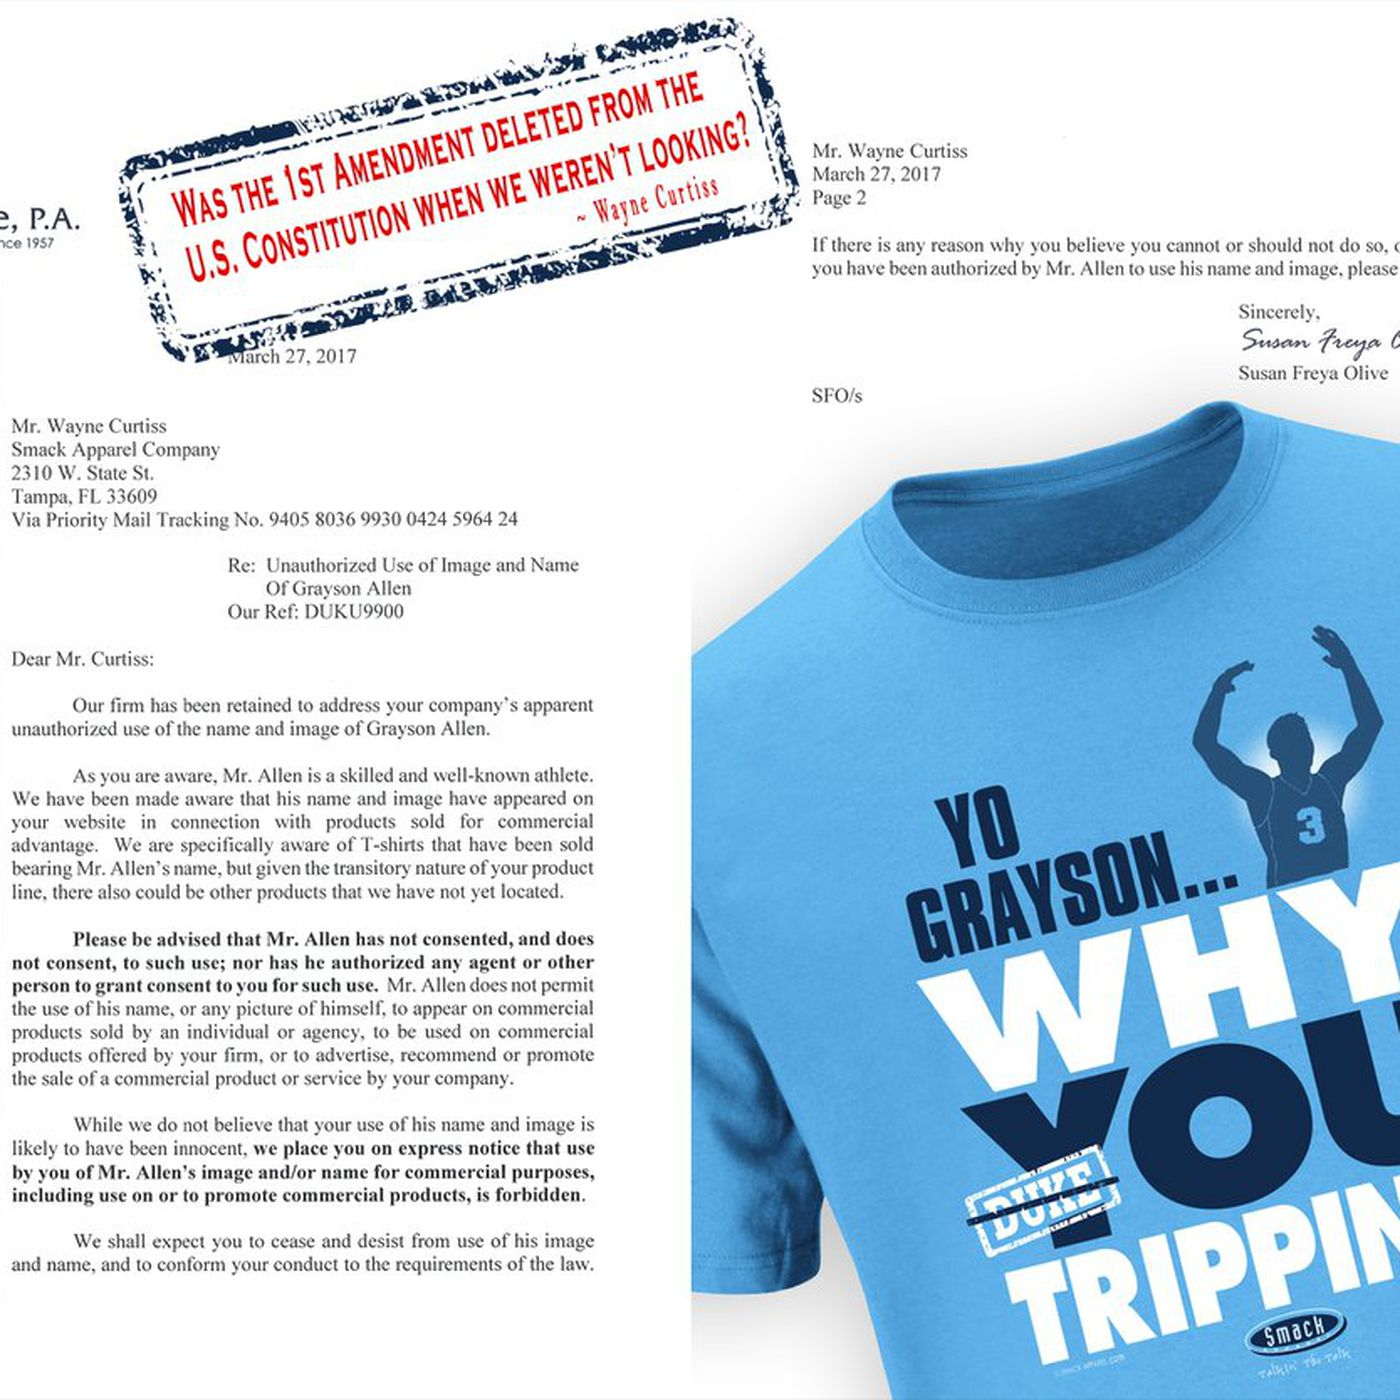 Duke sends cease and desist to company mocking grayson allen on t duke sends cease and desist to company mocking grayson allen on t shirts sbnation thecheapjerseys Image collections